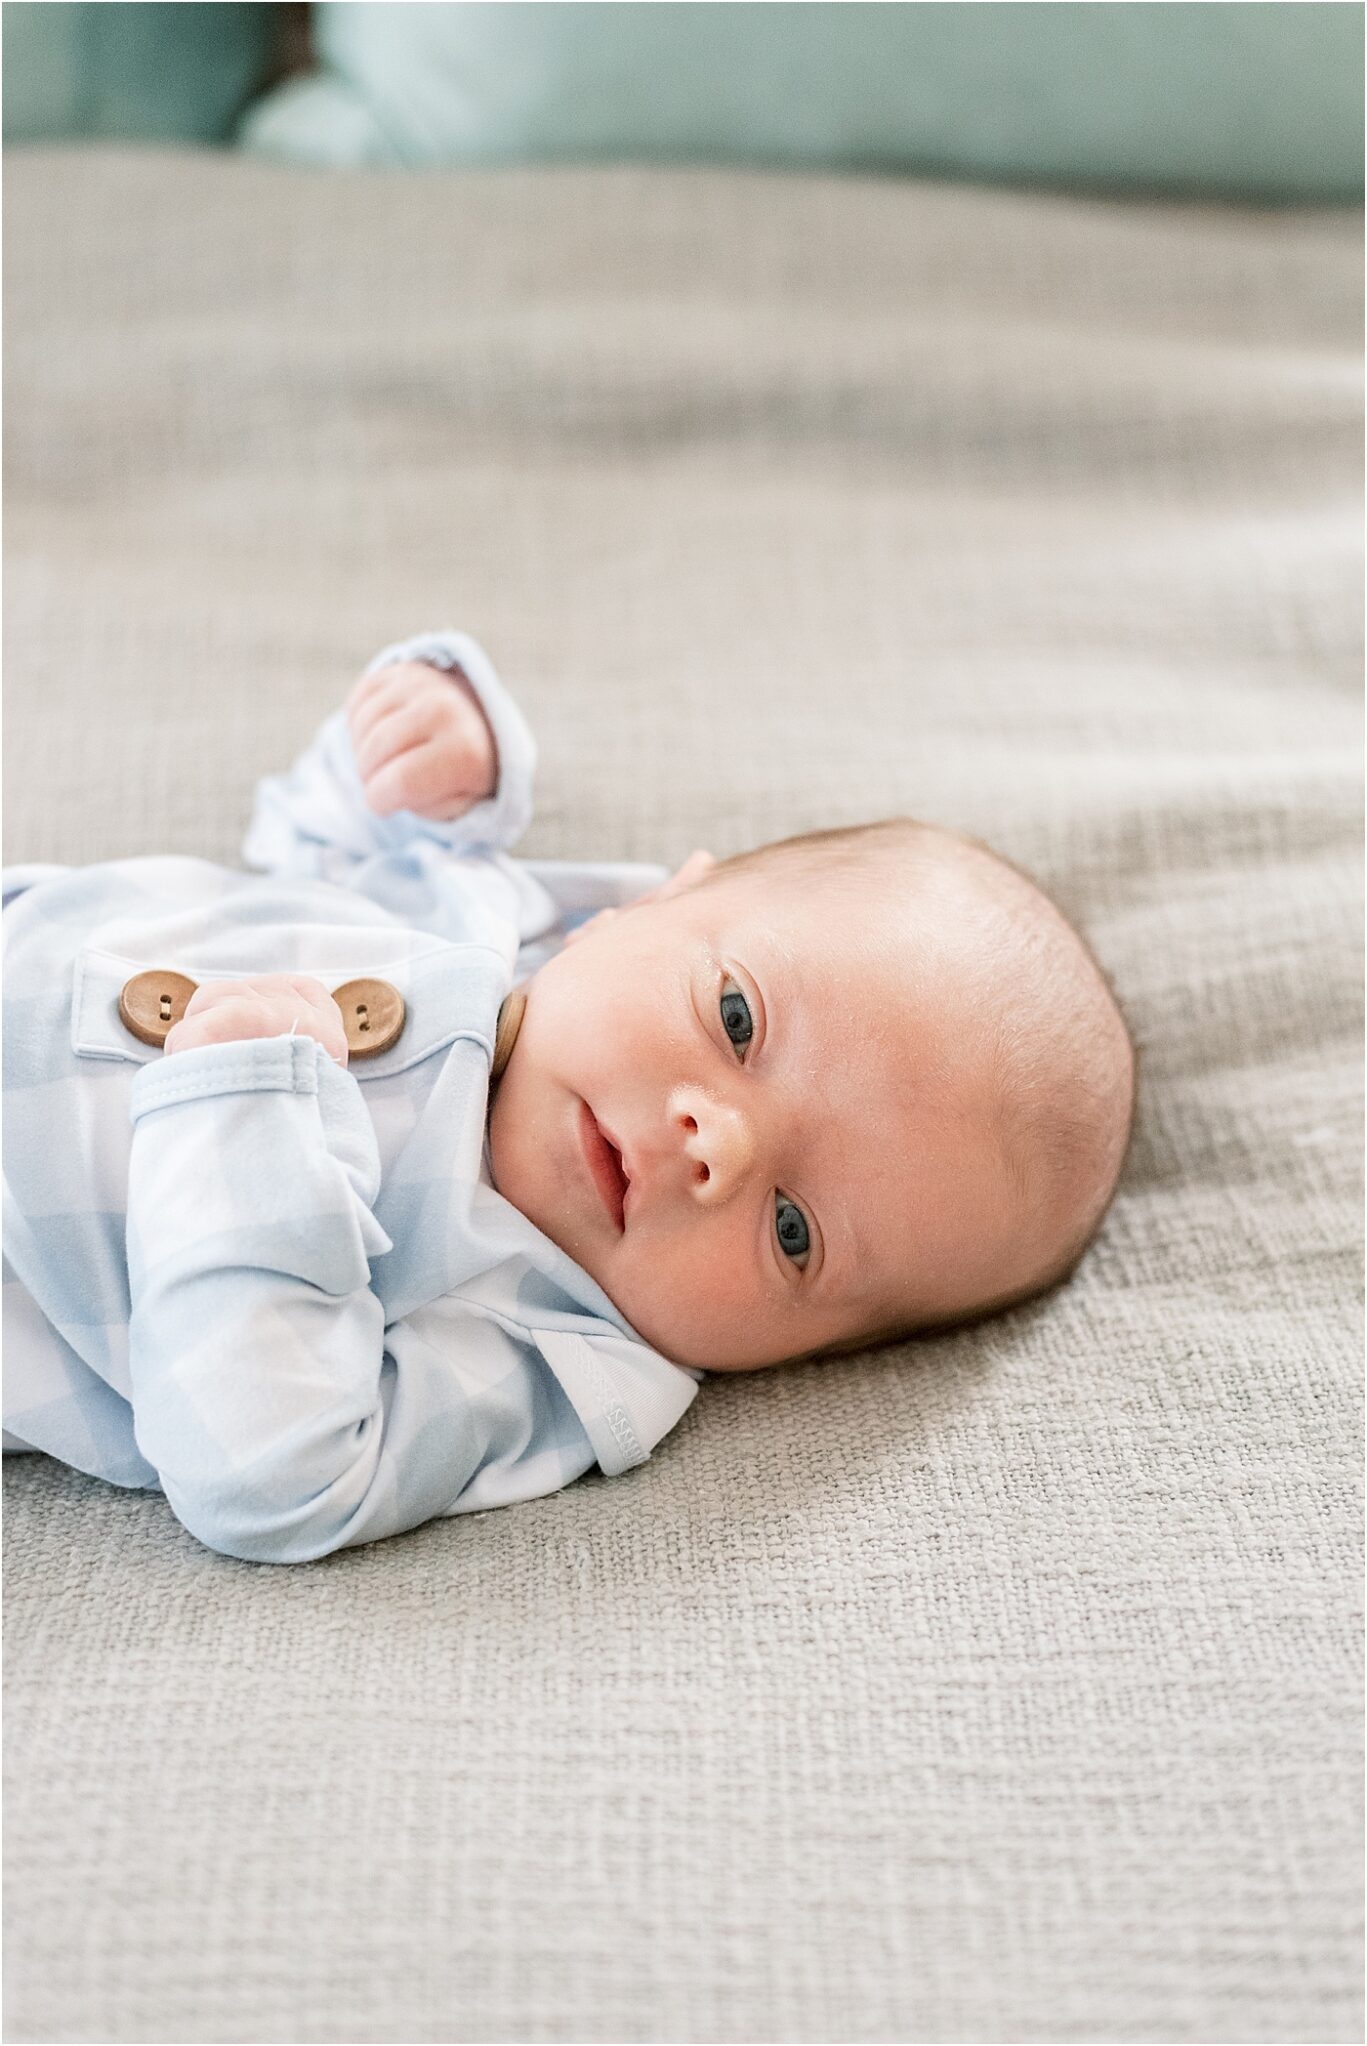 Baby boy laying in bed for in-home lifestyle newborn session with Carmel Photographer, Lindsay Konopa Photography.